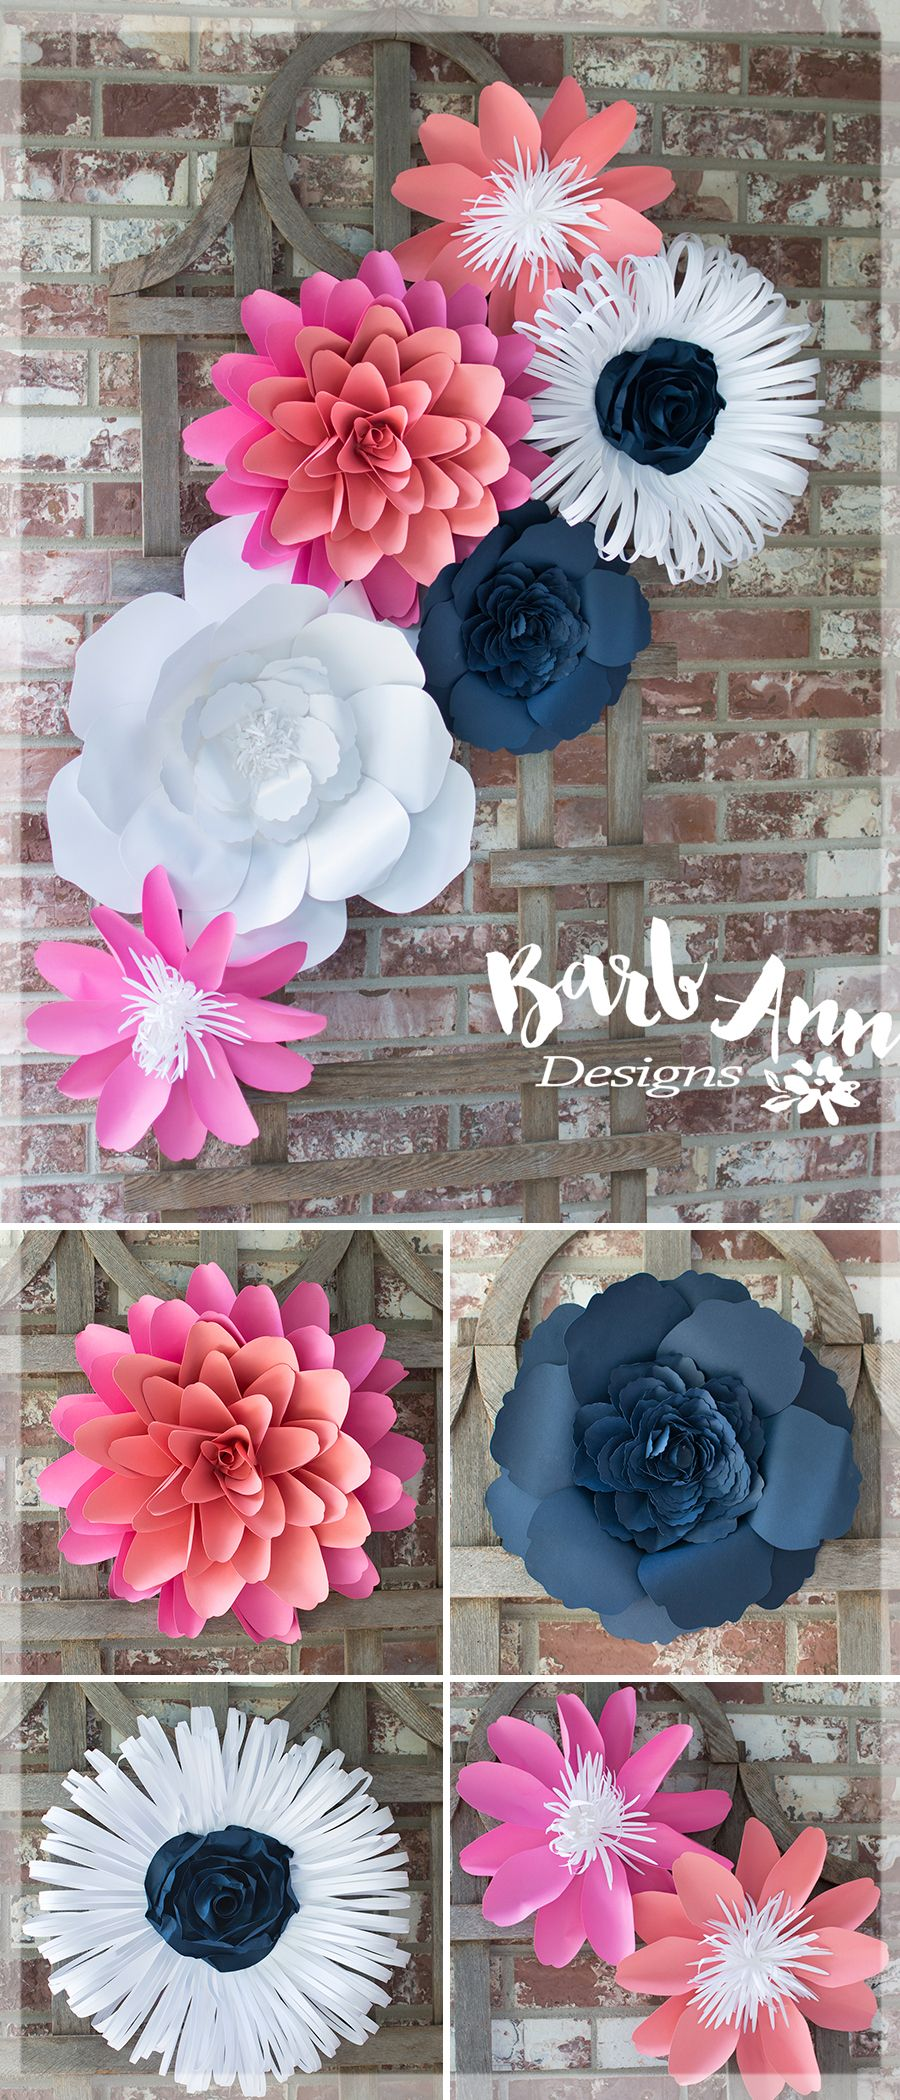 Large paper flower wall decor for nursery weddings bridal showers baby  also rh pinterest